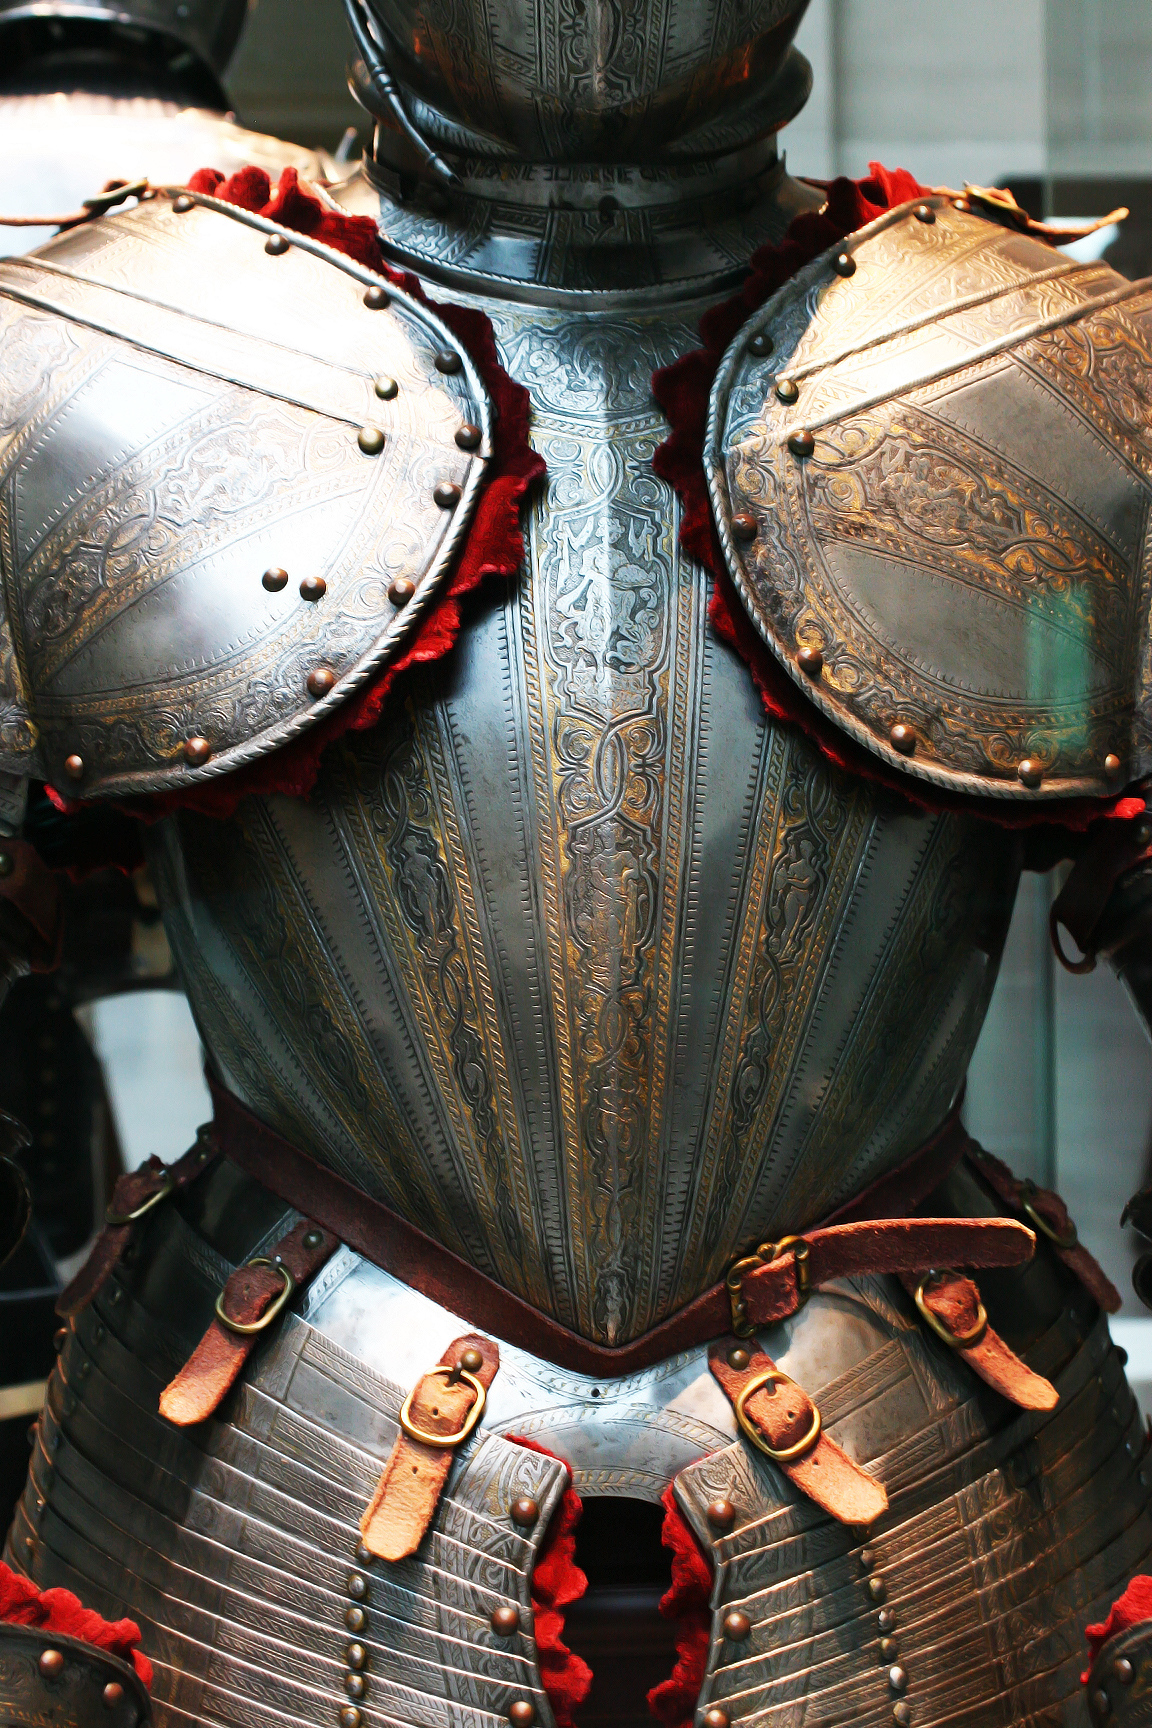 Museum pictures of armor